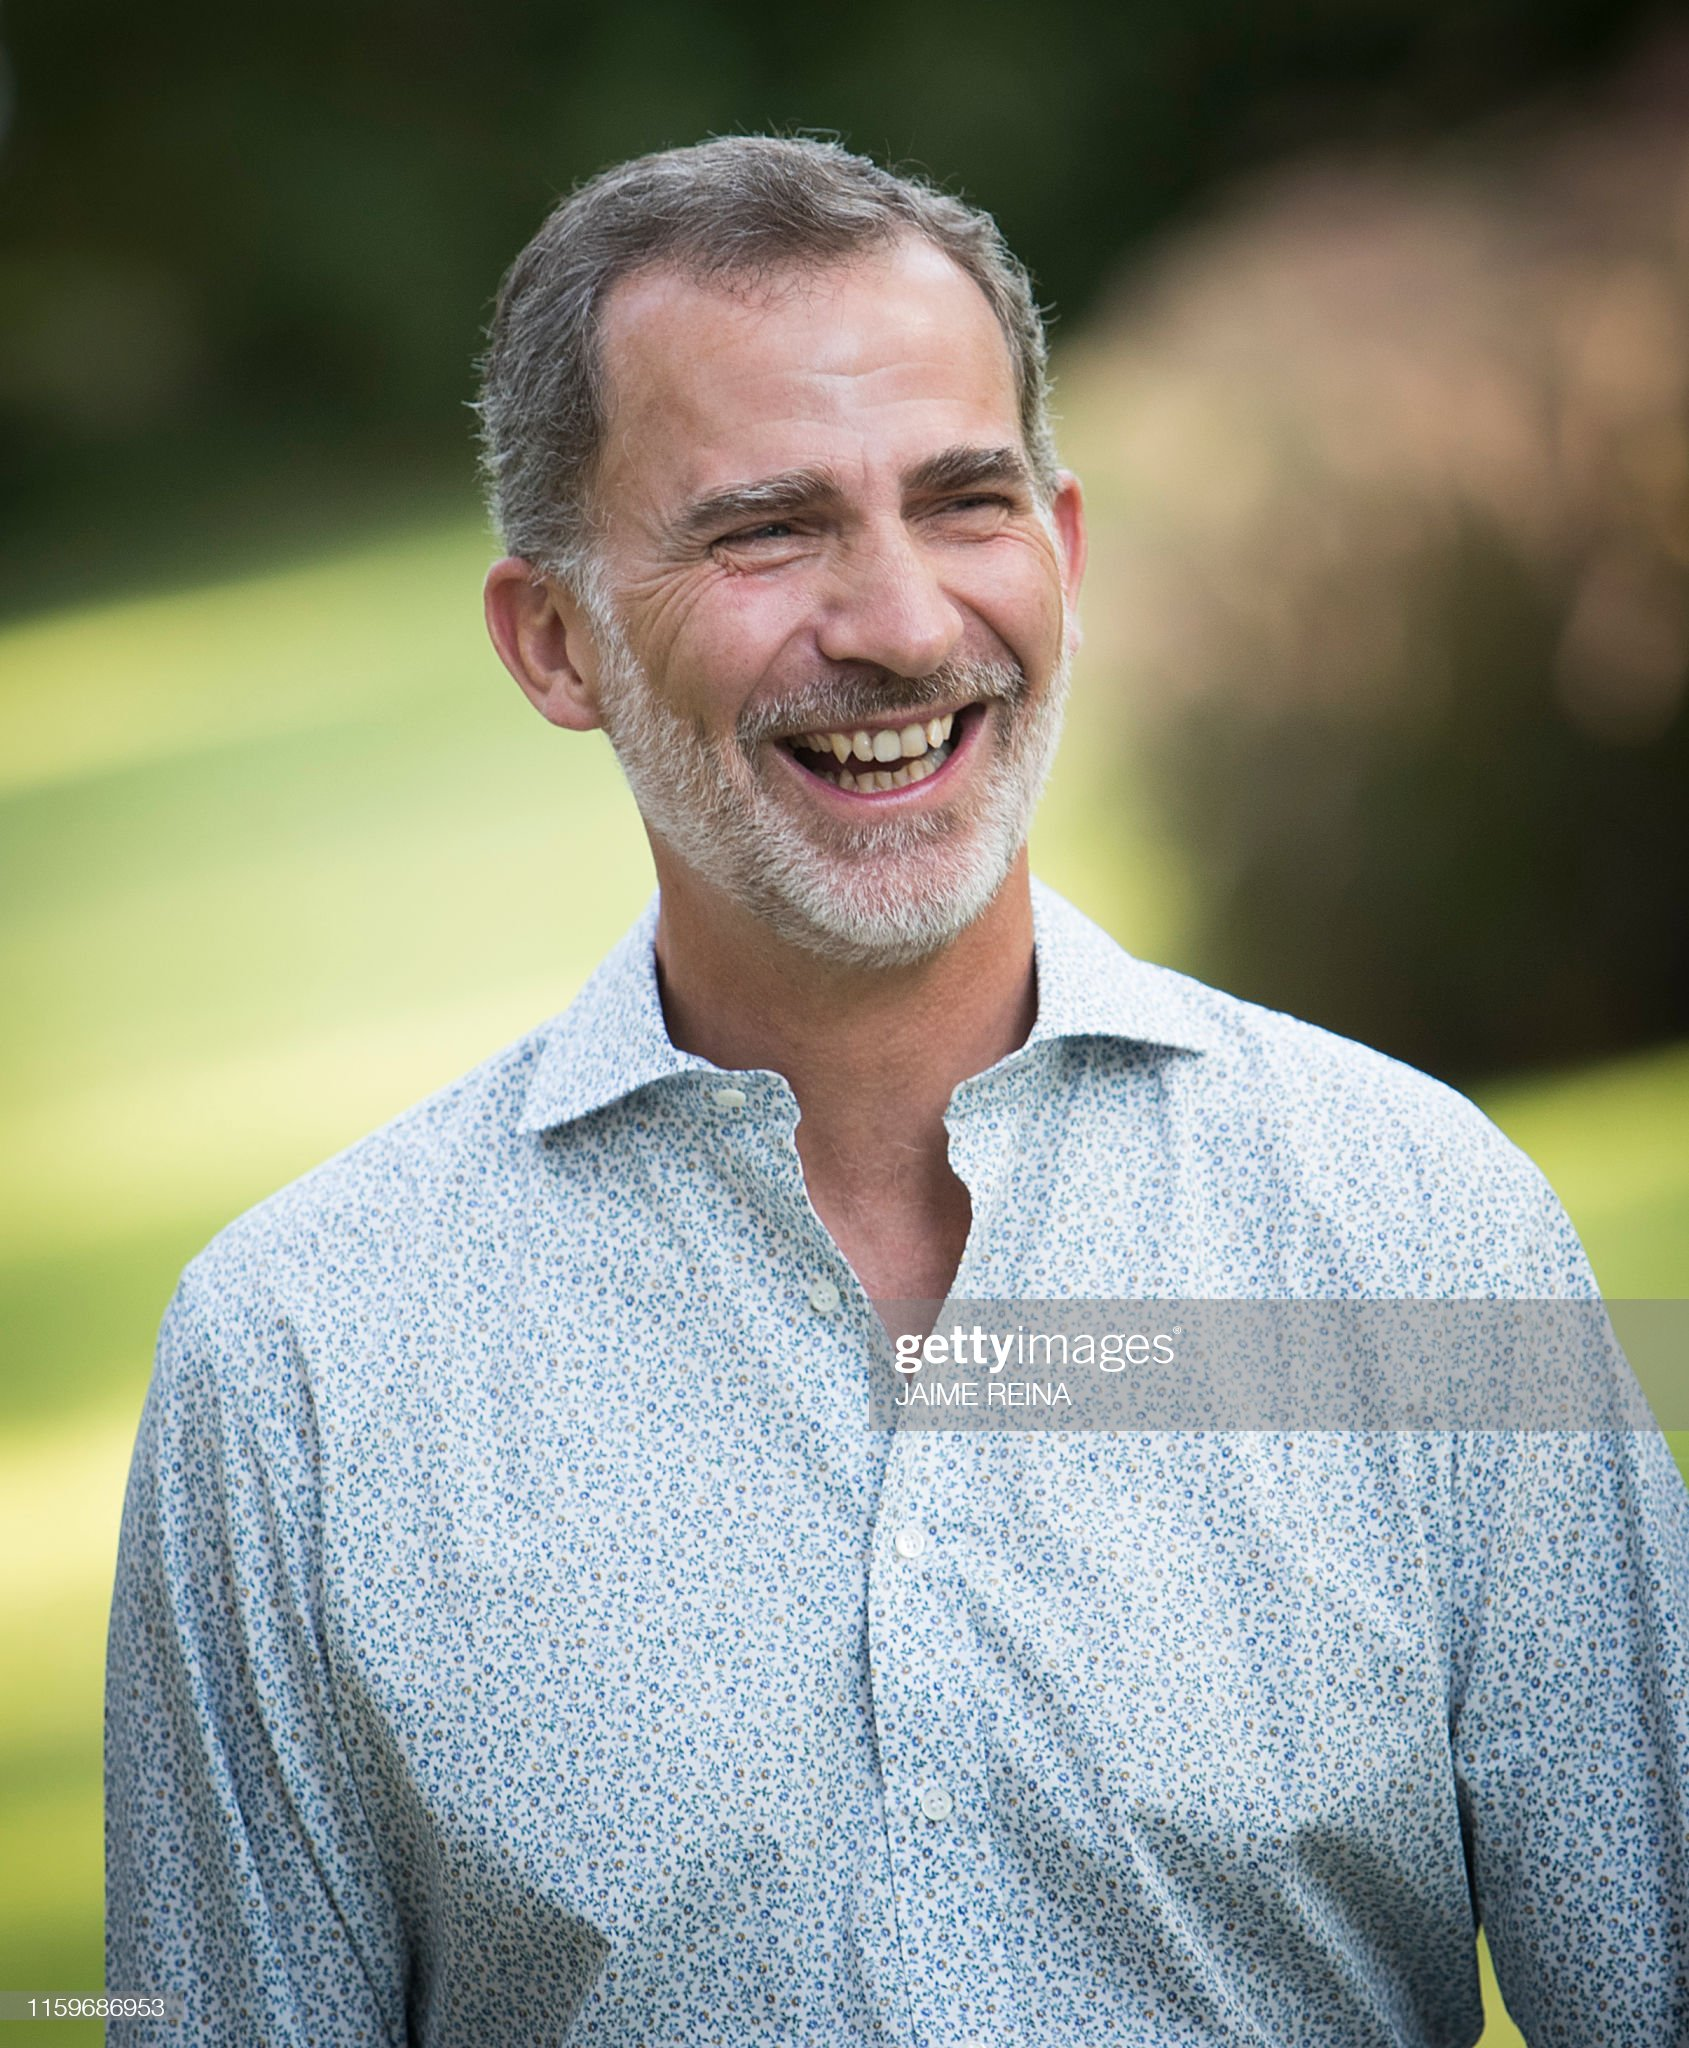 spanish-king-felipe-vi-laughs-as-he-poses-in-the-gardens-at-the-on-picture-id1159686953